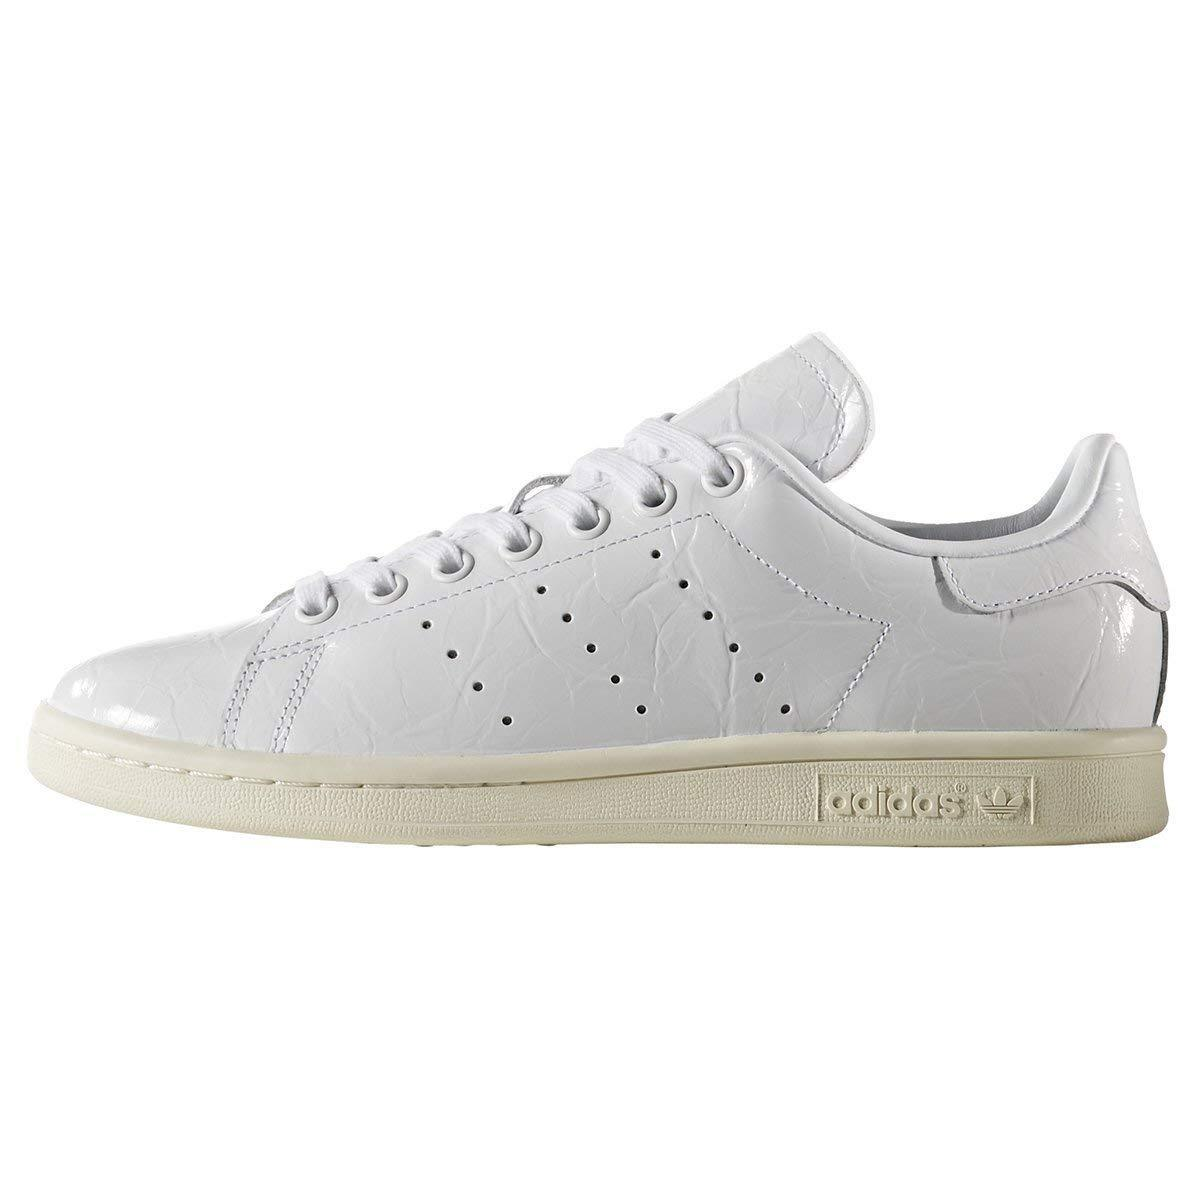 Adidas Originals Stan Smith W BB5162 women's trainers crinkled leather white